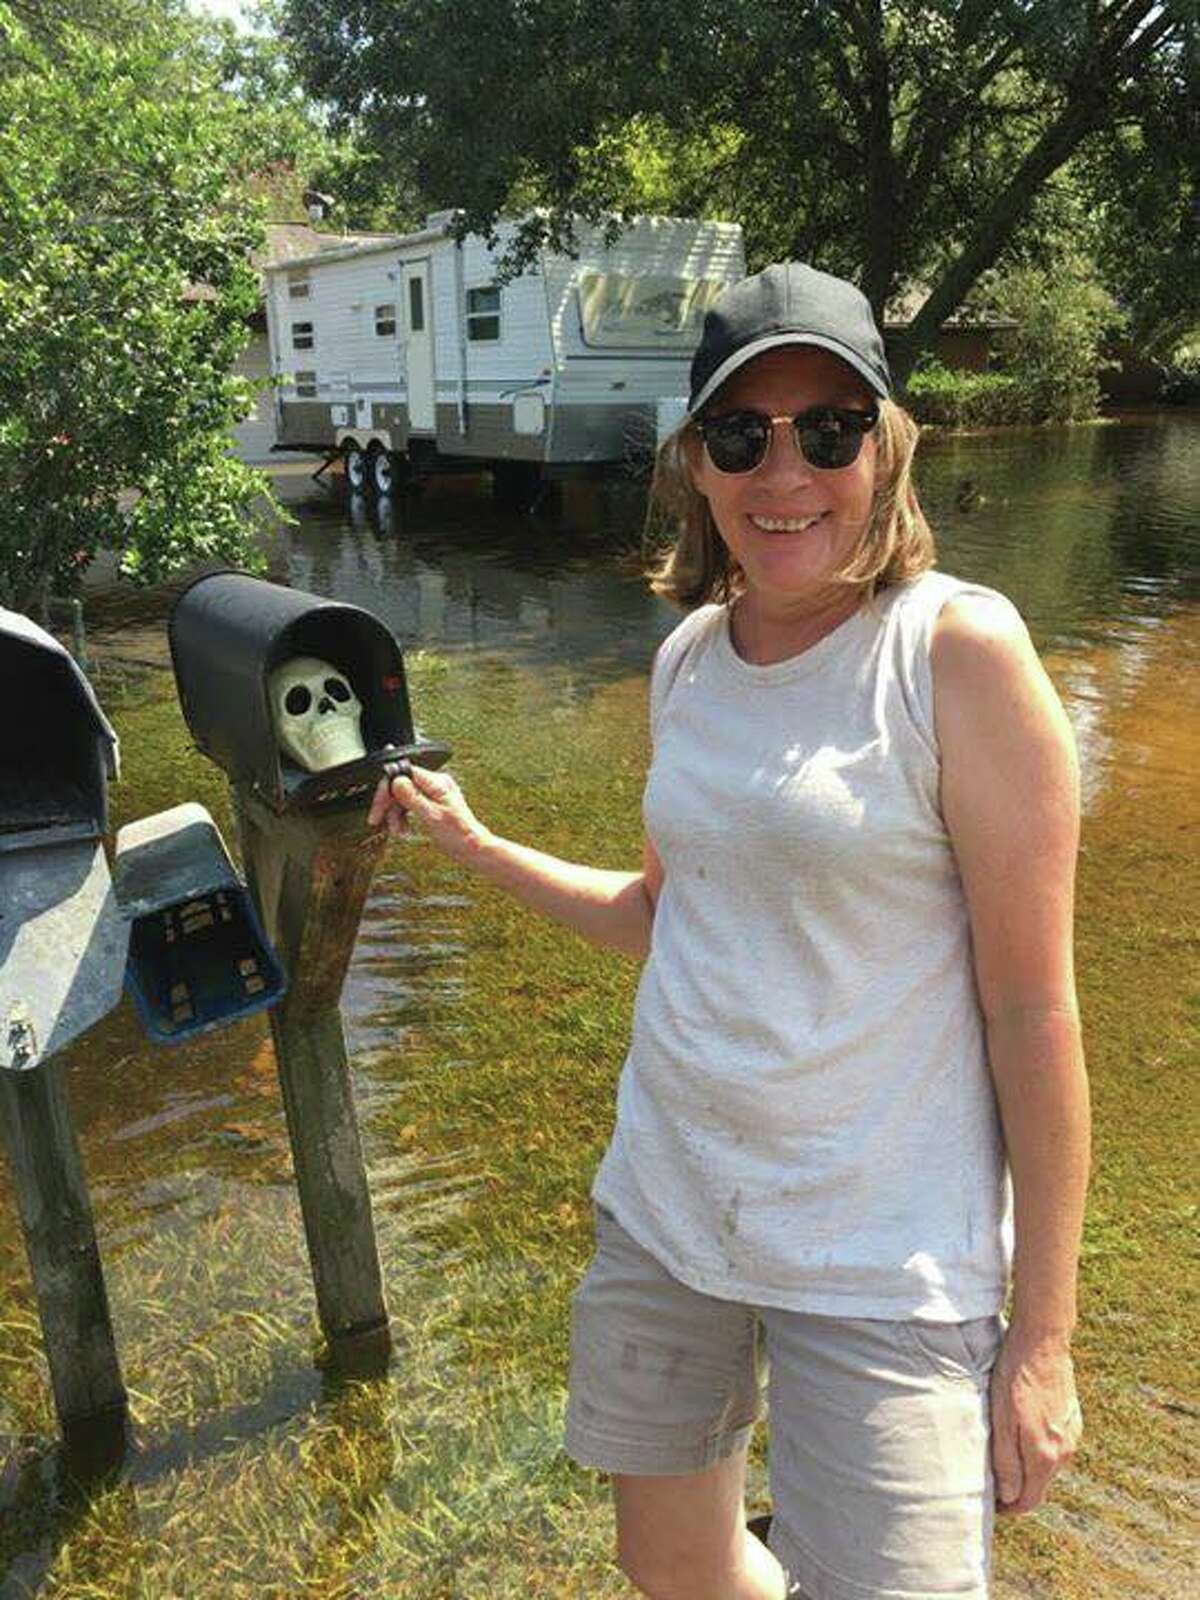 When Stacy Cox Brady found this plastic skull floating by she decided to put it in her neighbor's mailbox.